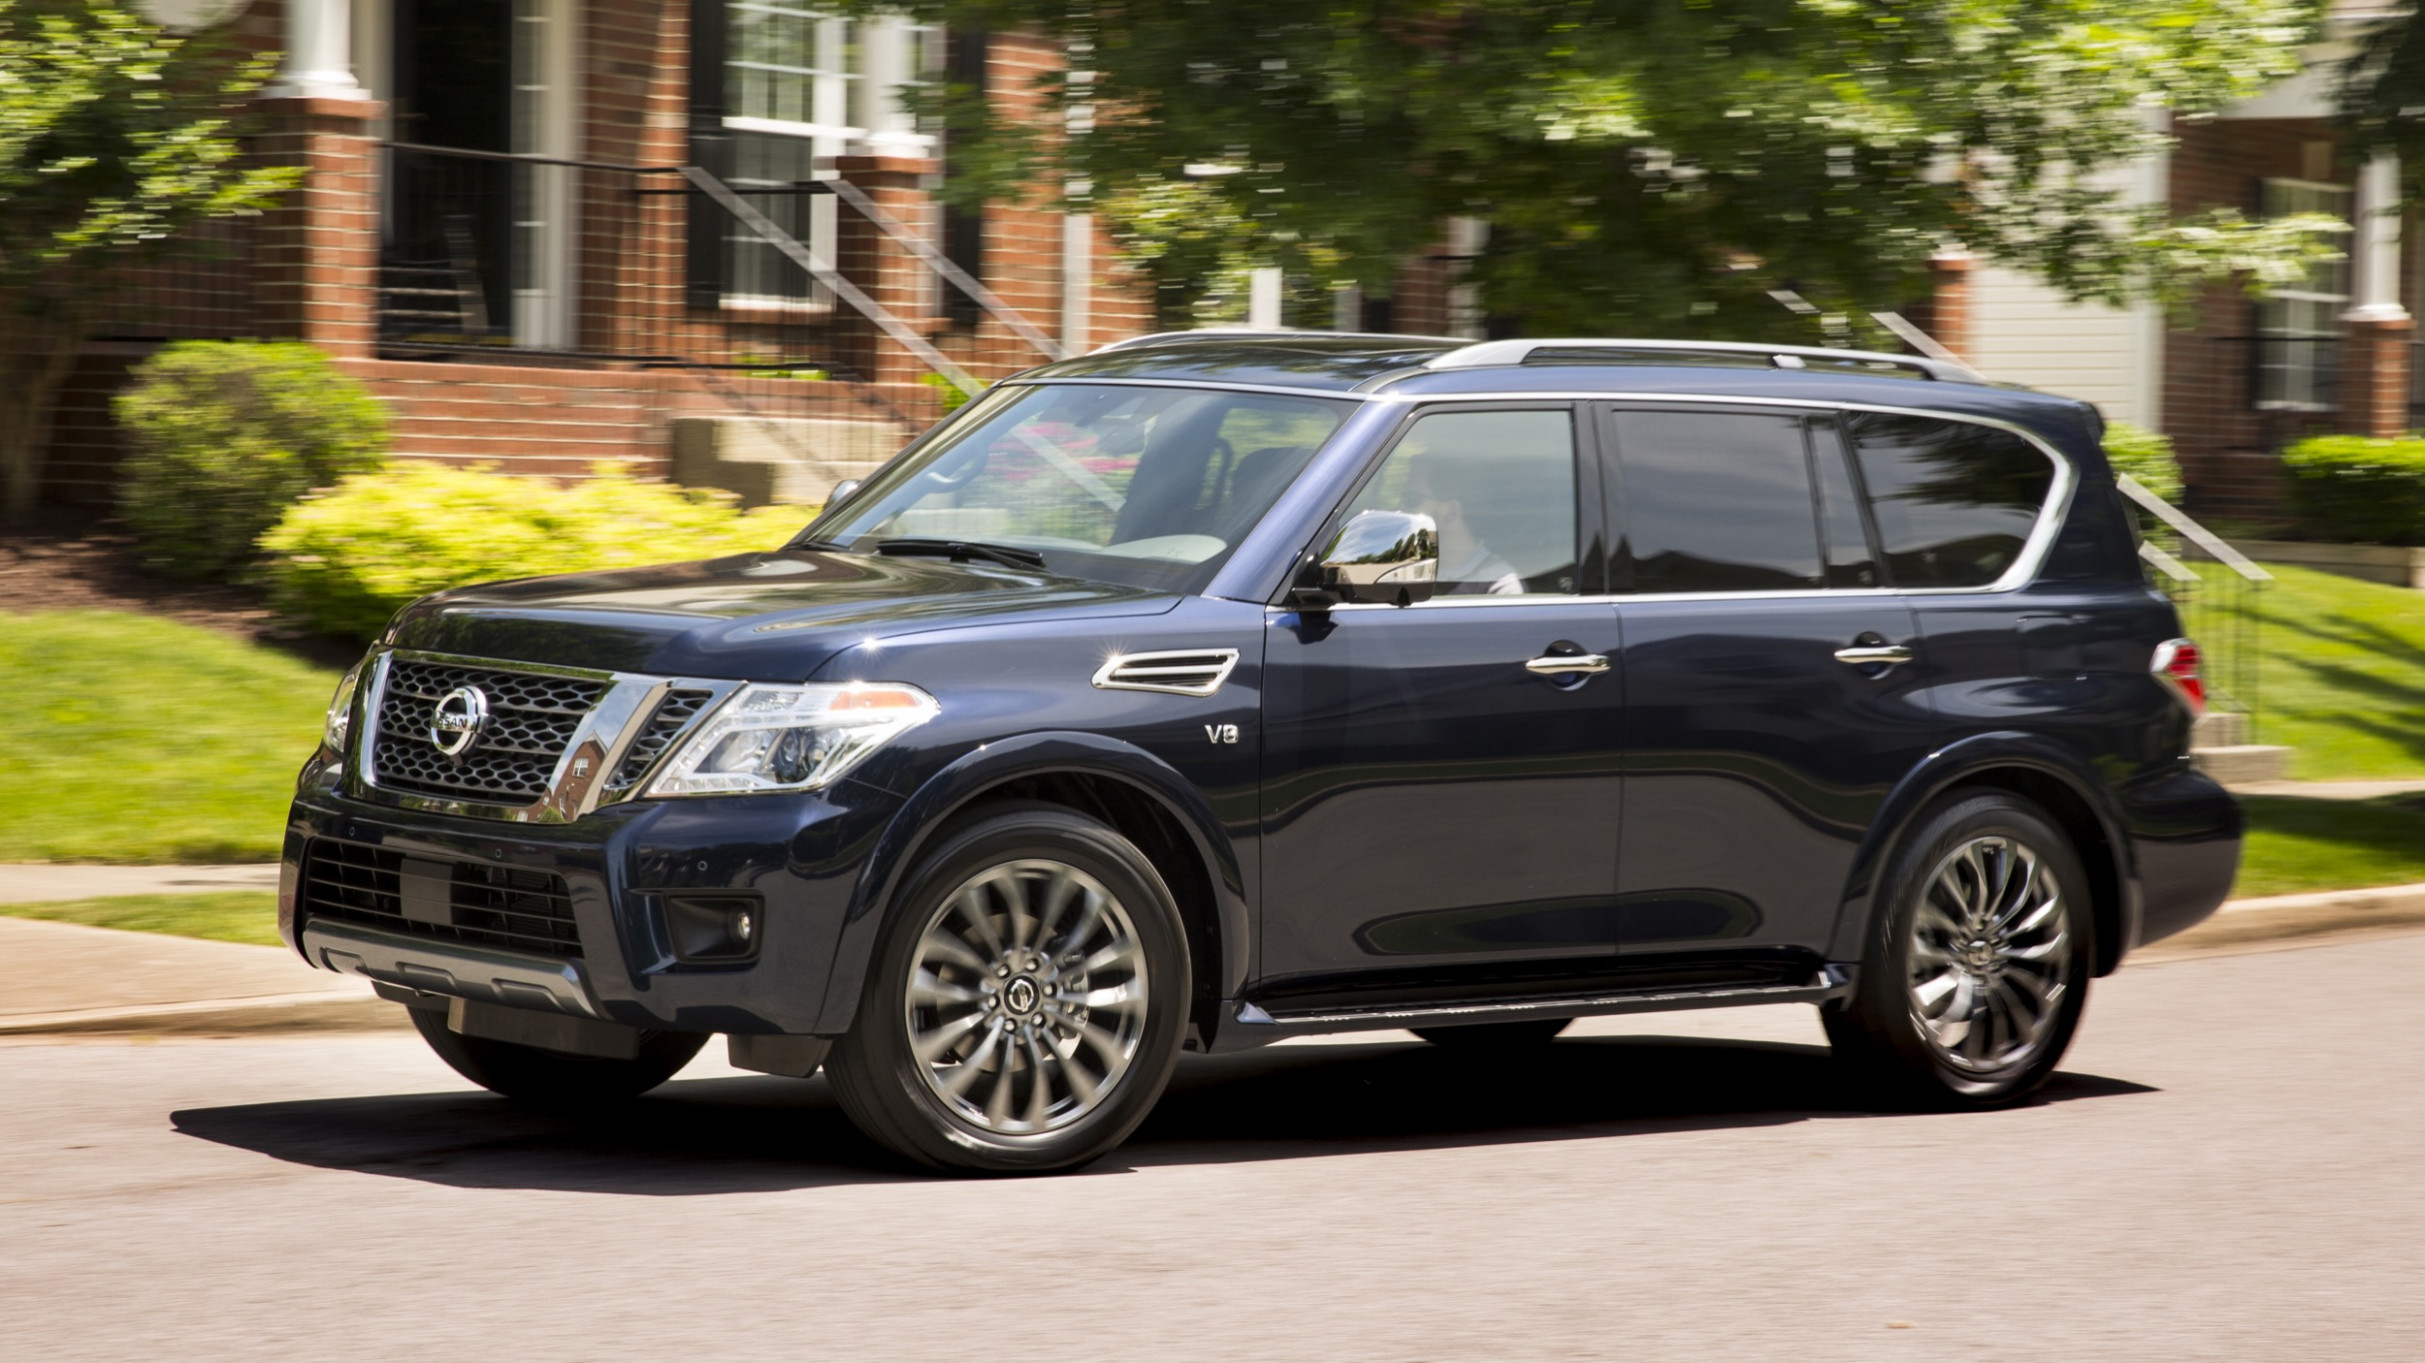 7 Nissan Armada Reviews | Price, specs, features and photos ...